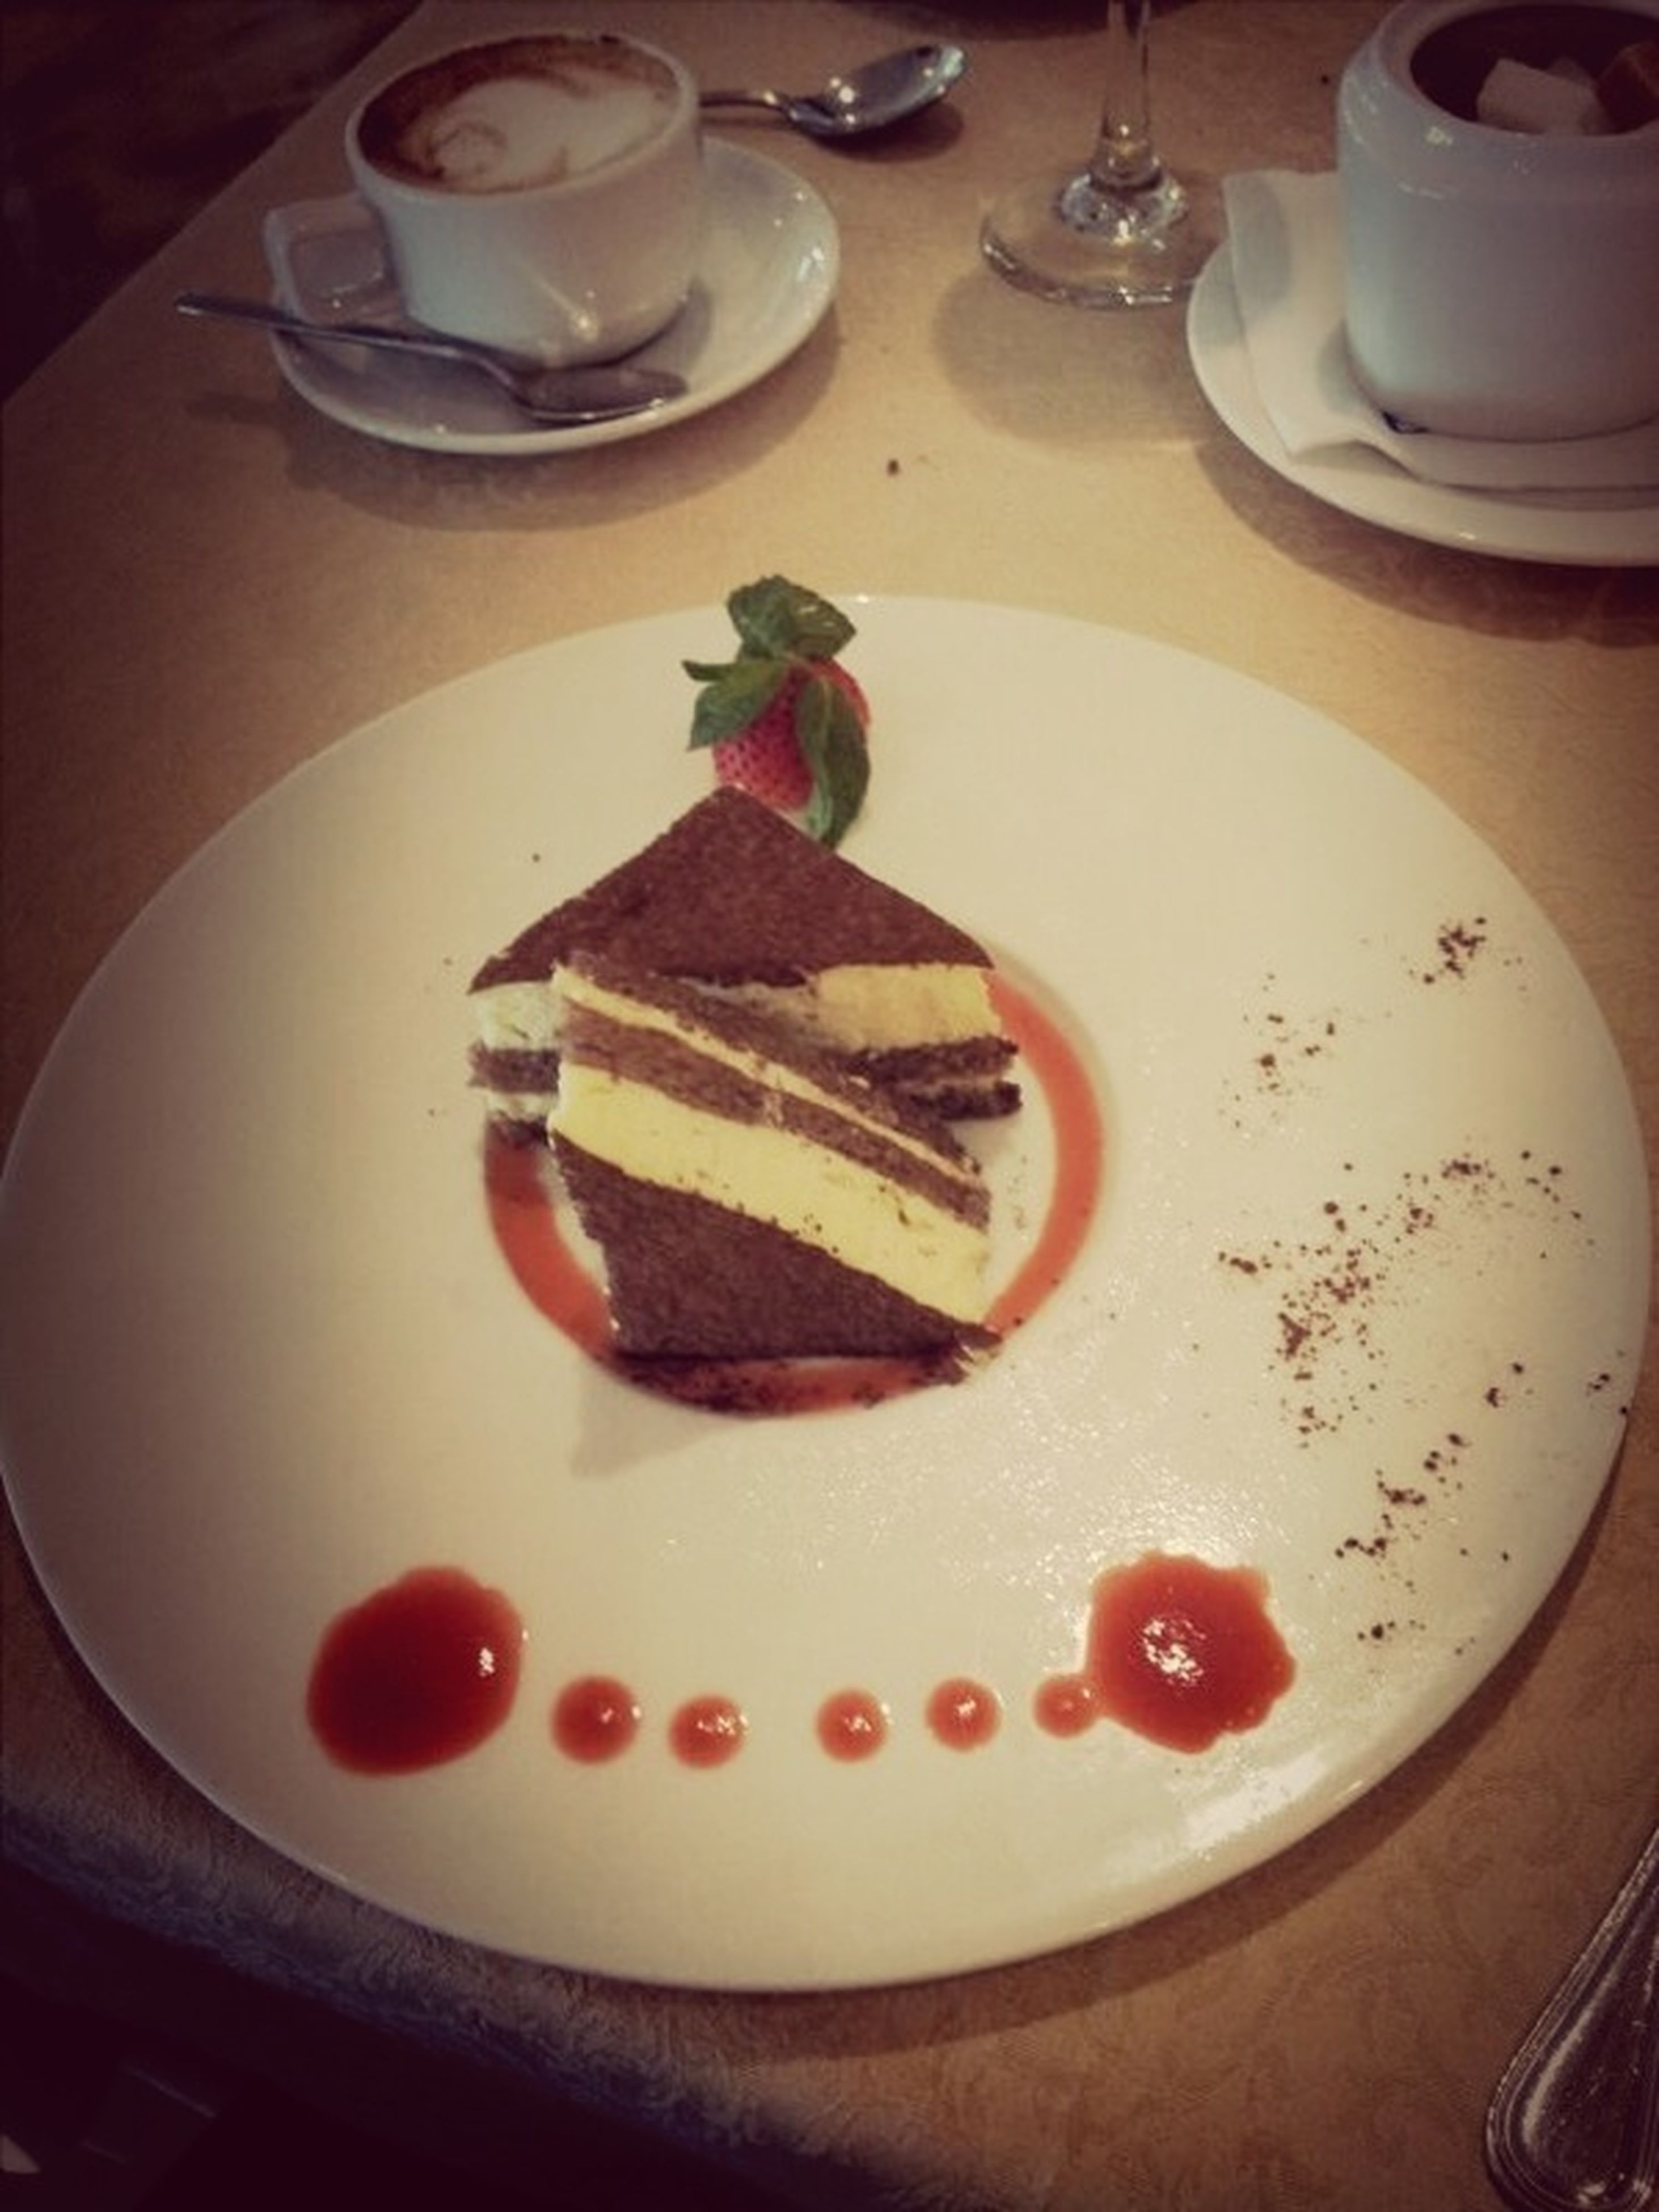 food and drink, indoors, food, plate, freshness, sweet food, ready-to-eat, dessert, still life, indulgence, table, cake, serving size, unhealthy eating, high angle view, close-up, temptation, fork, chocolate, breakfast